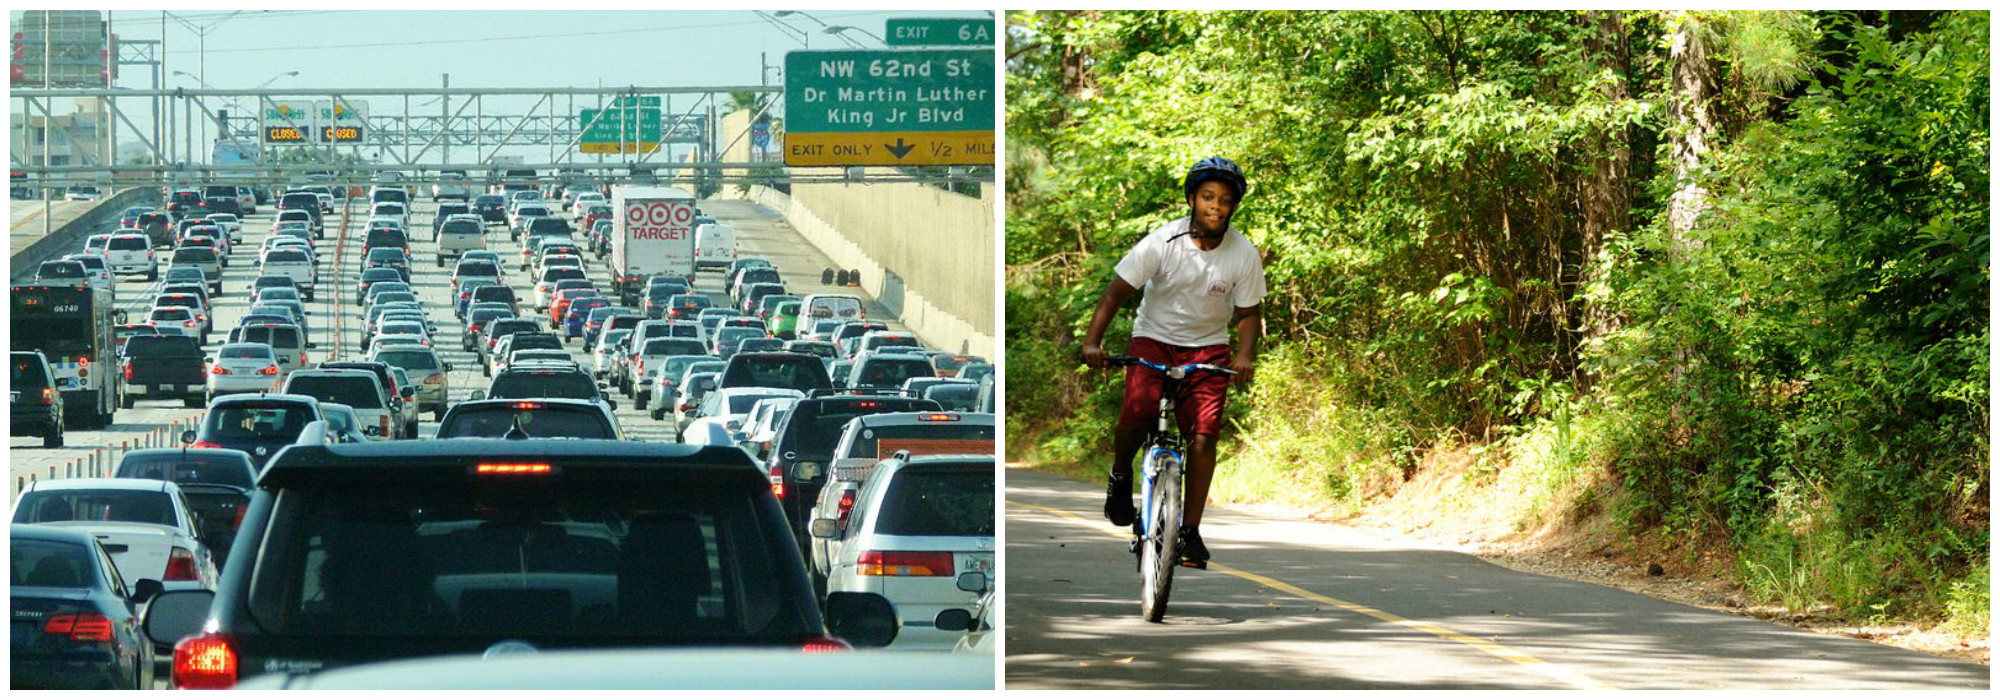 Traffic jam on left, shady bike path on right